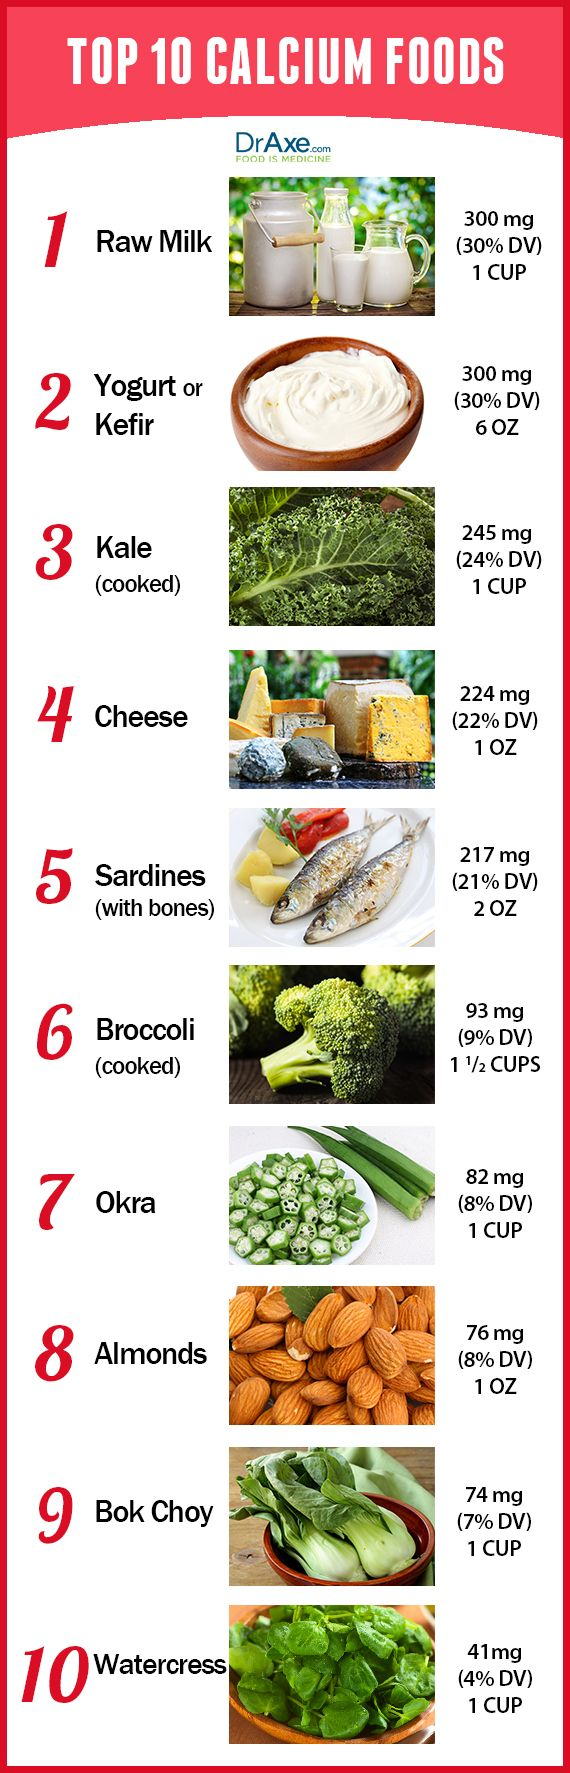 Daily diet for good health - Calcium Foods List